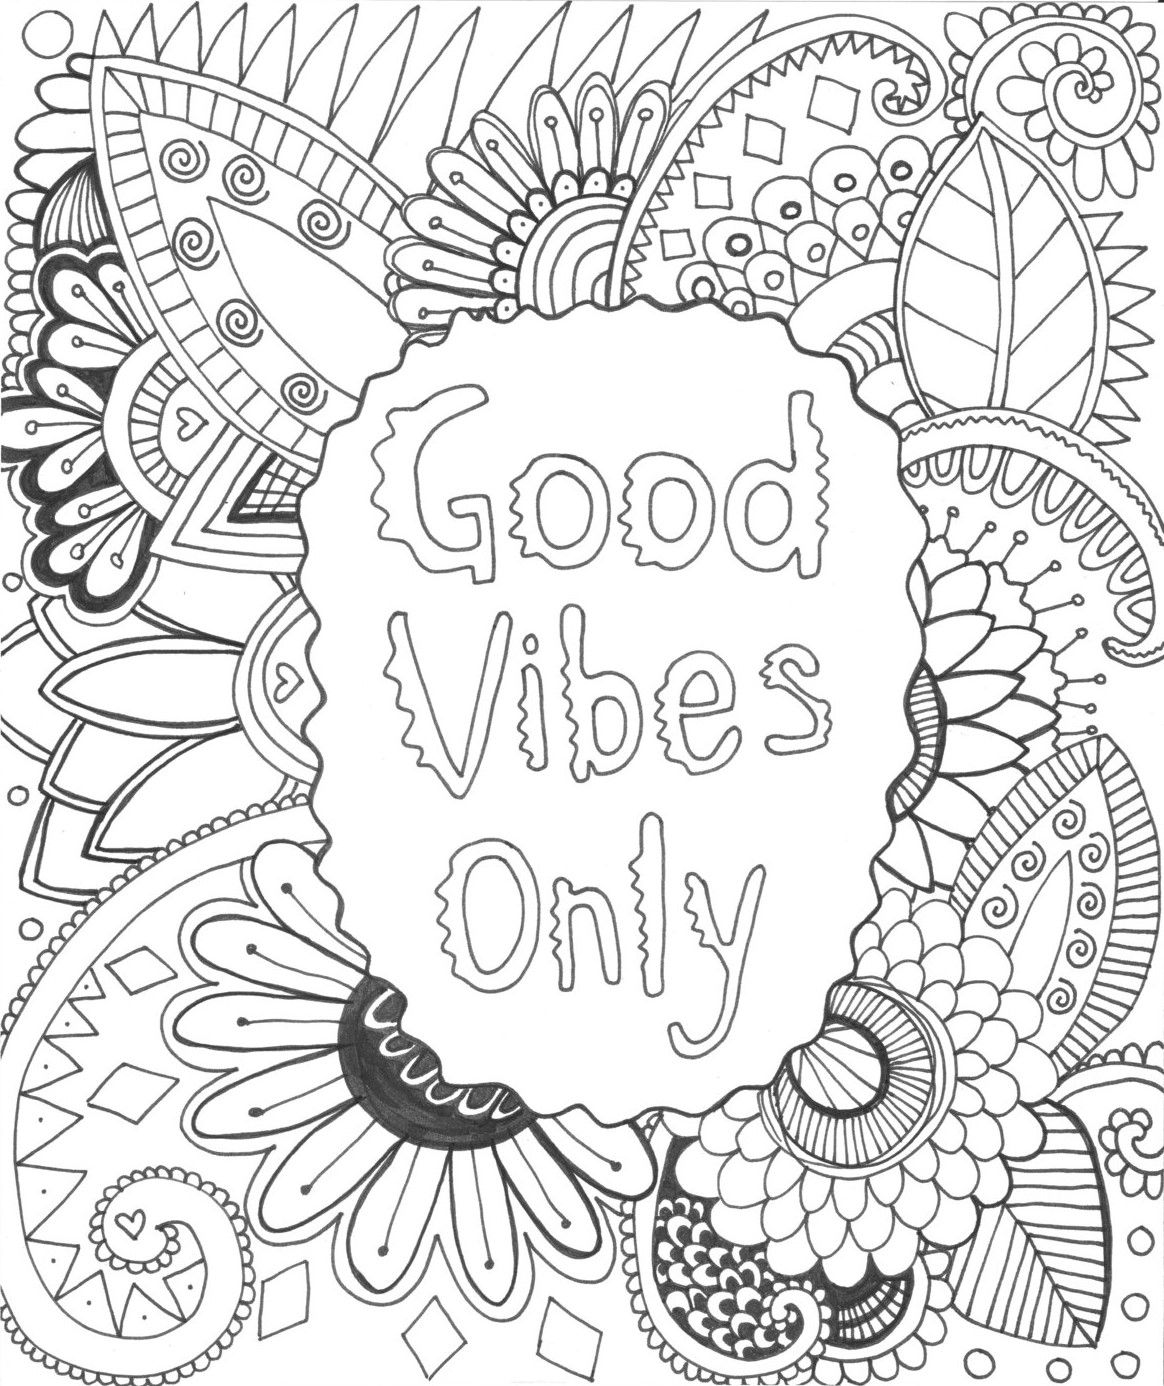 Good Vibes Coloring Book Pages